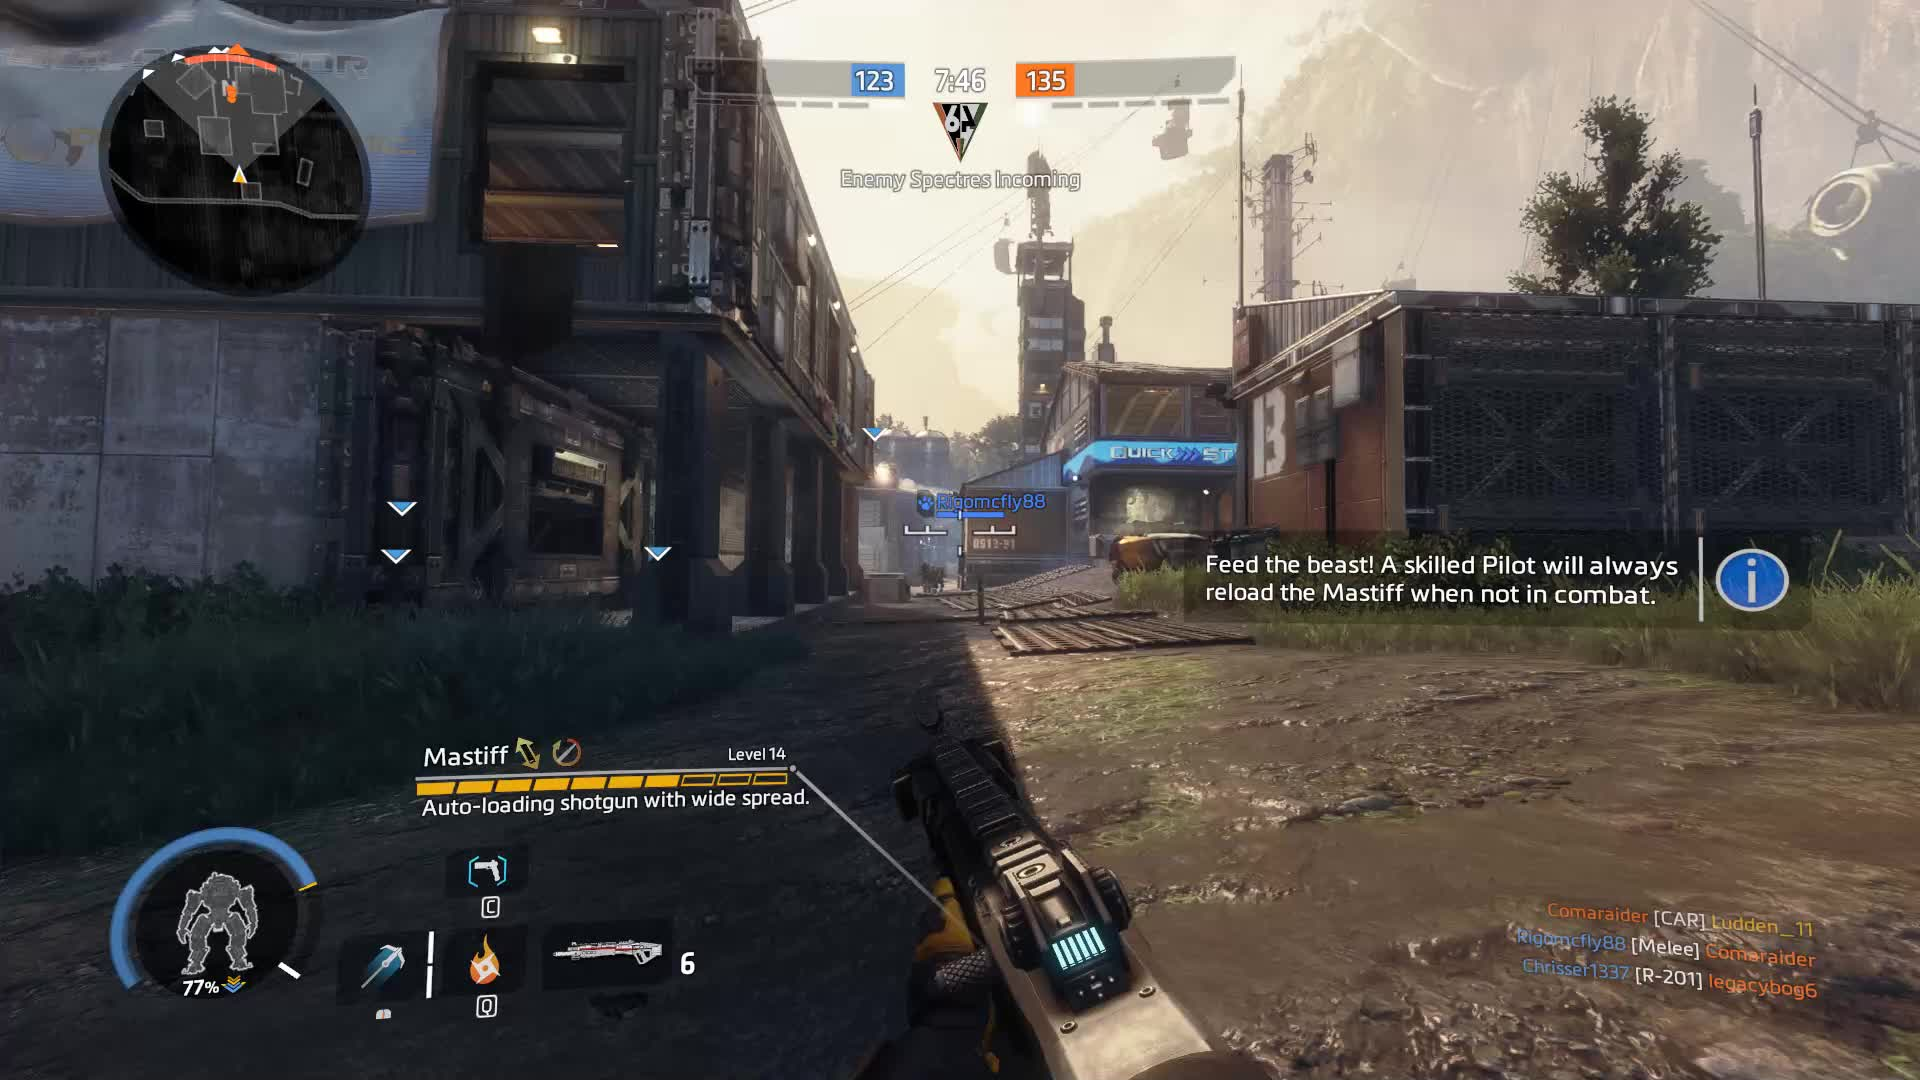 Titanfall, thingsthatblowup, Titanfall2: Press C to Blow Yourself Up. GIFs